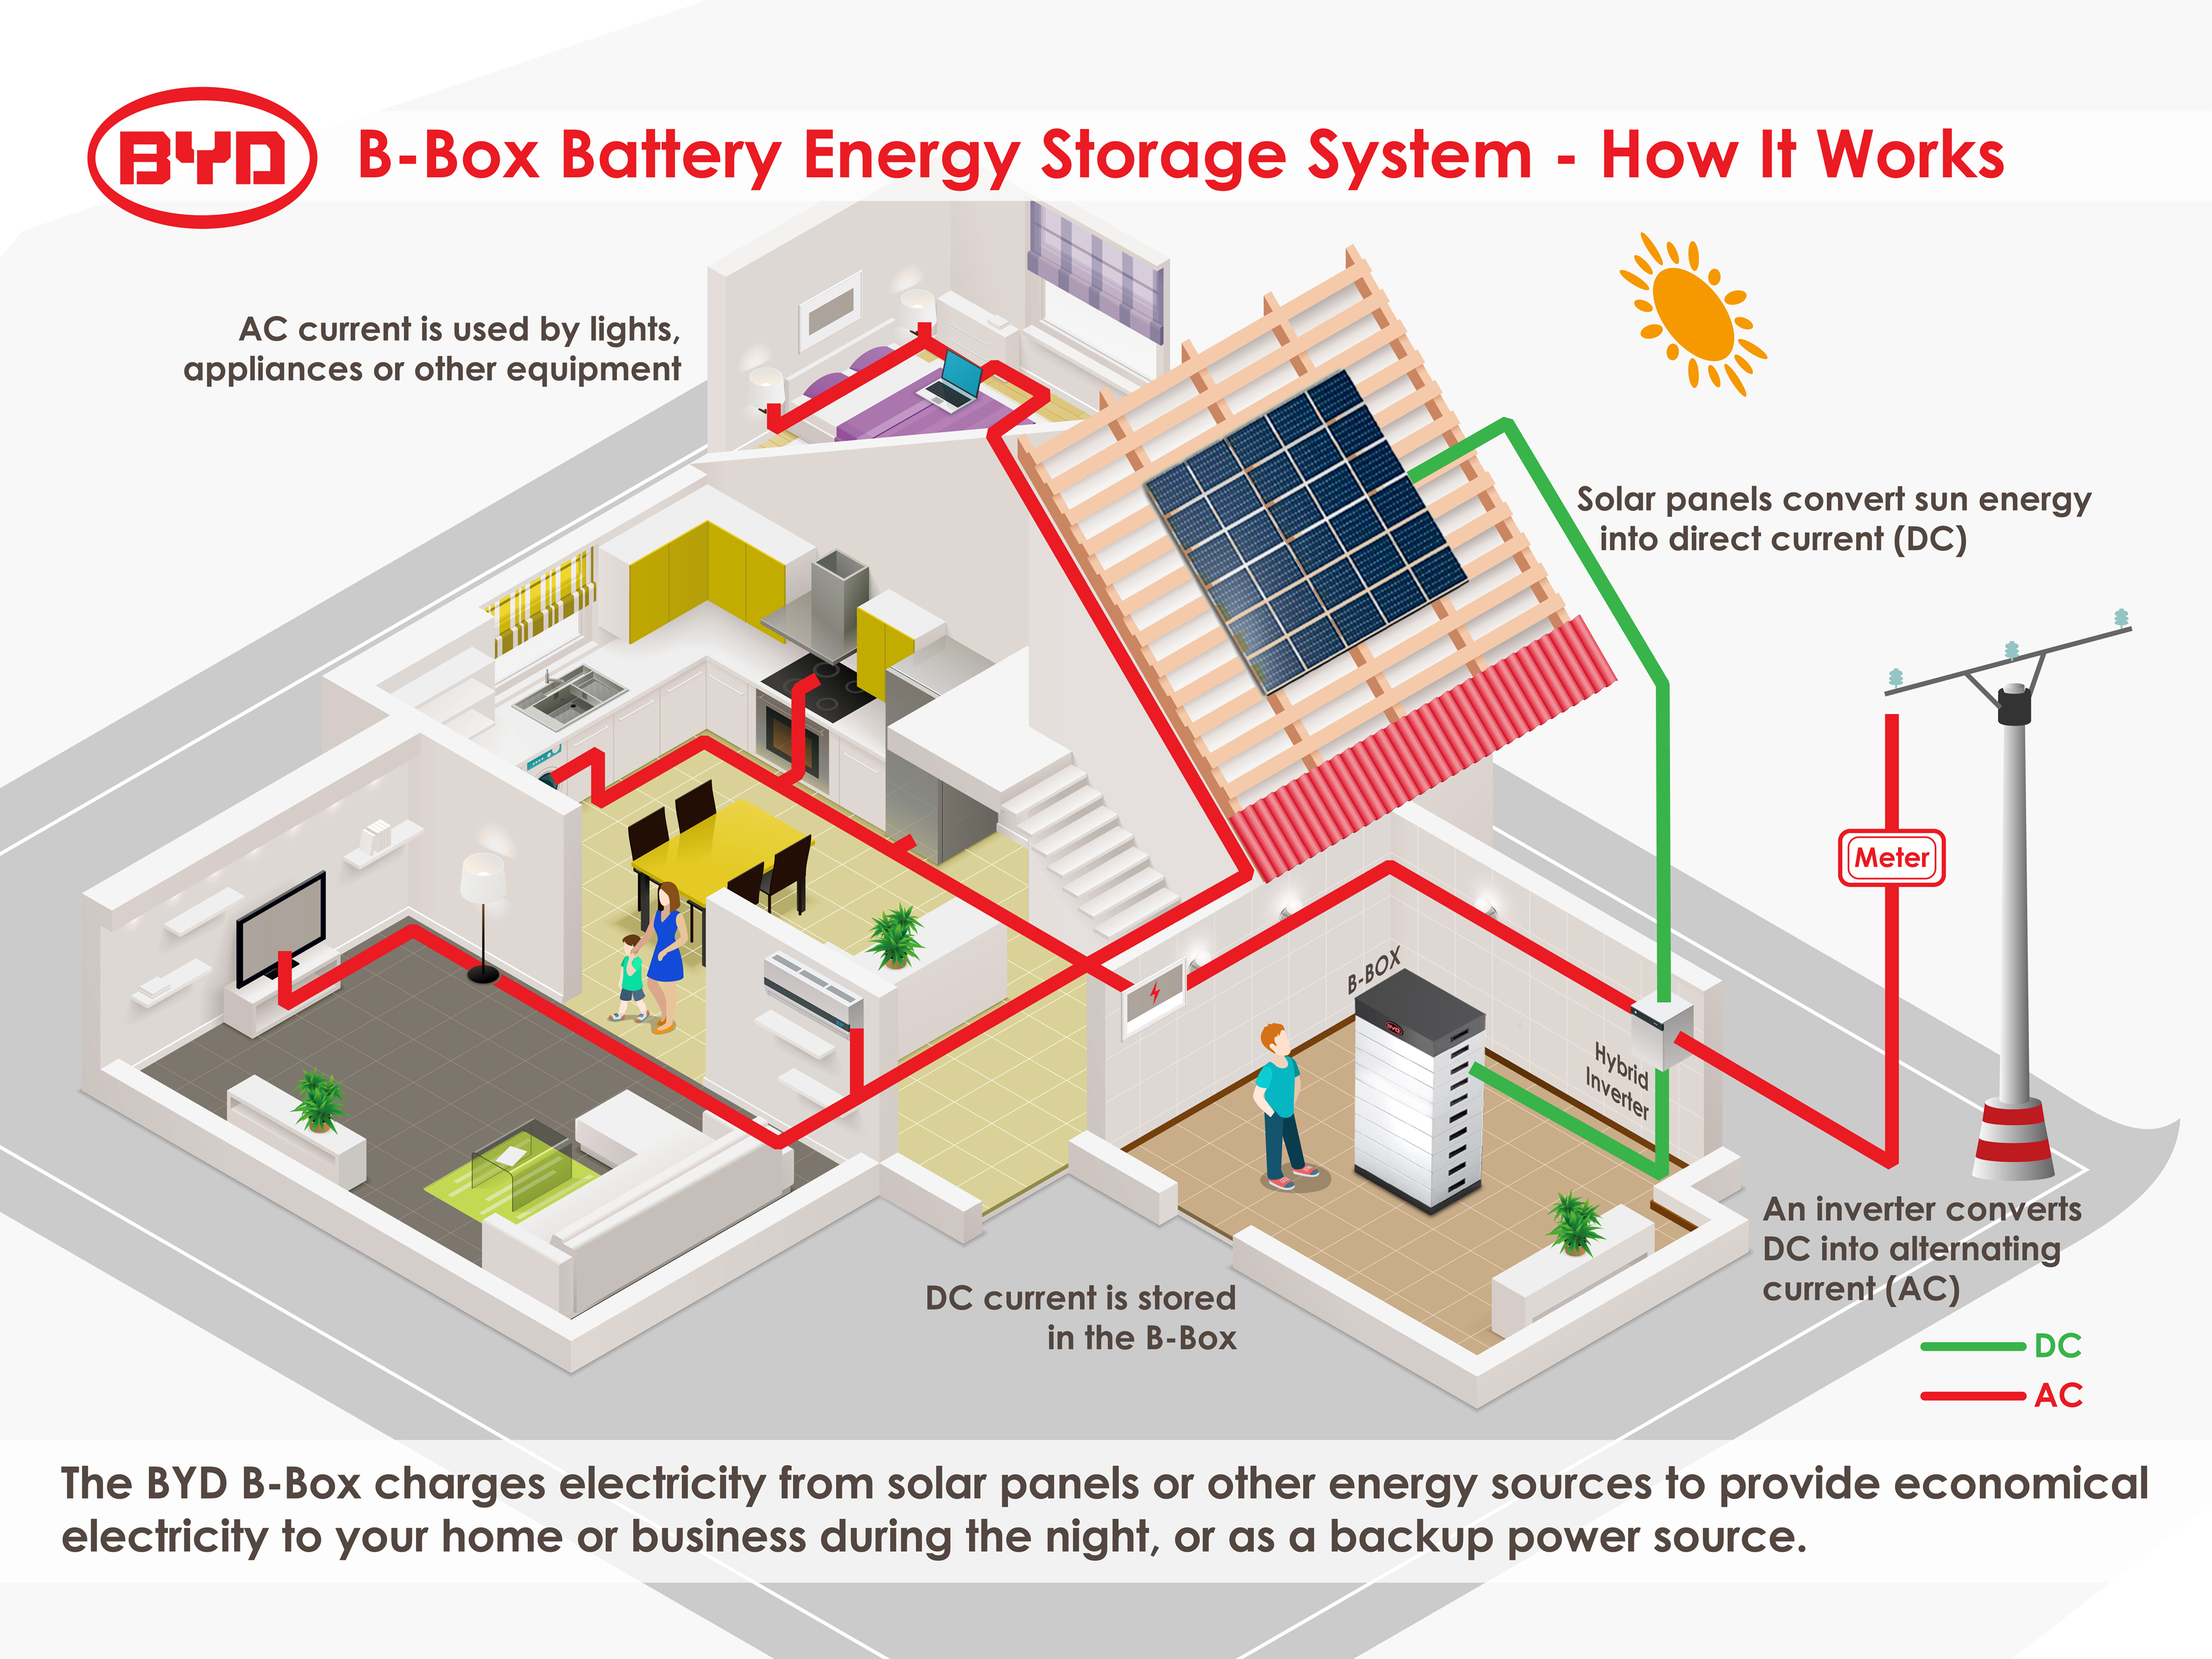 Battery-Box Energy Storage System - How it works